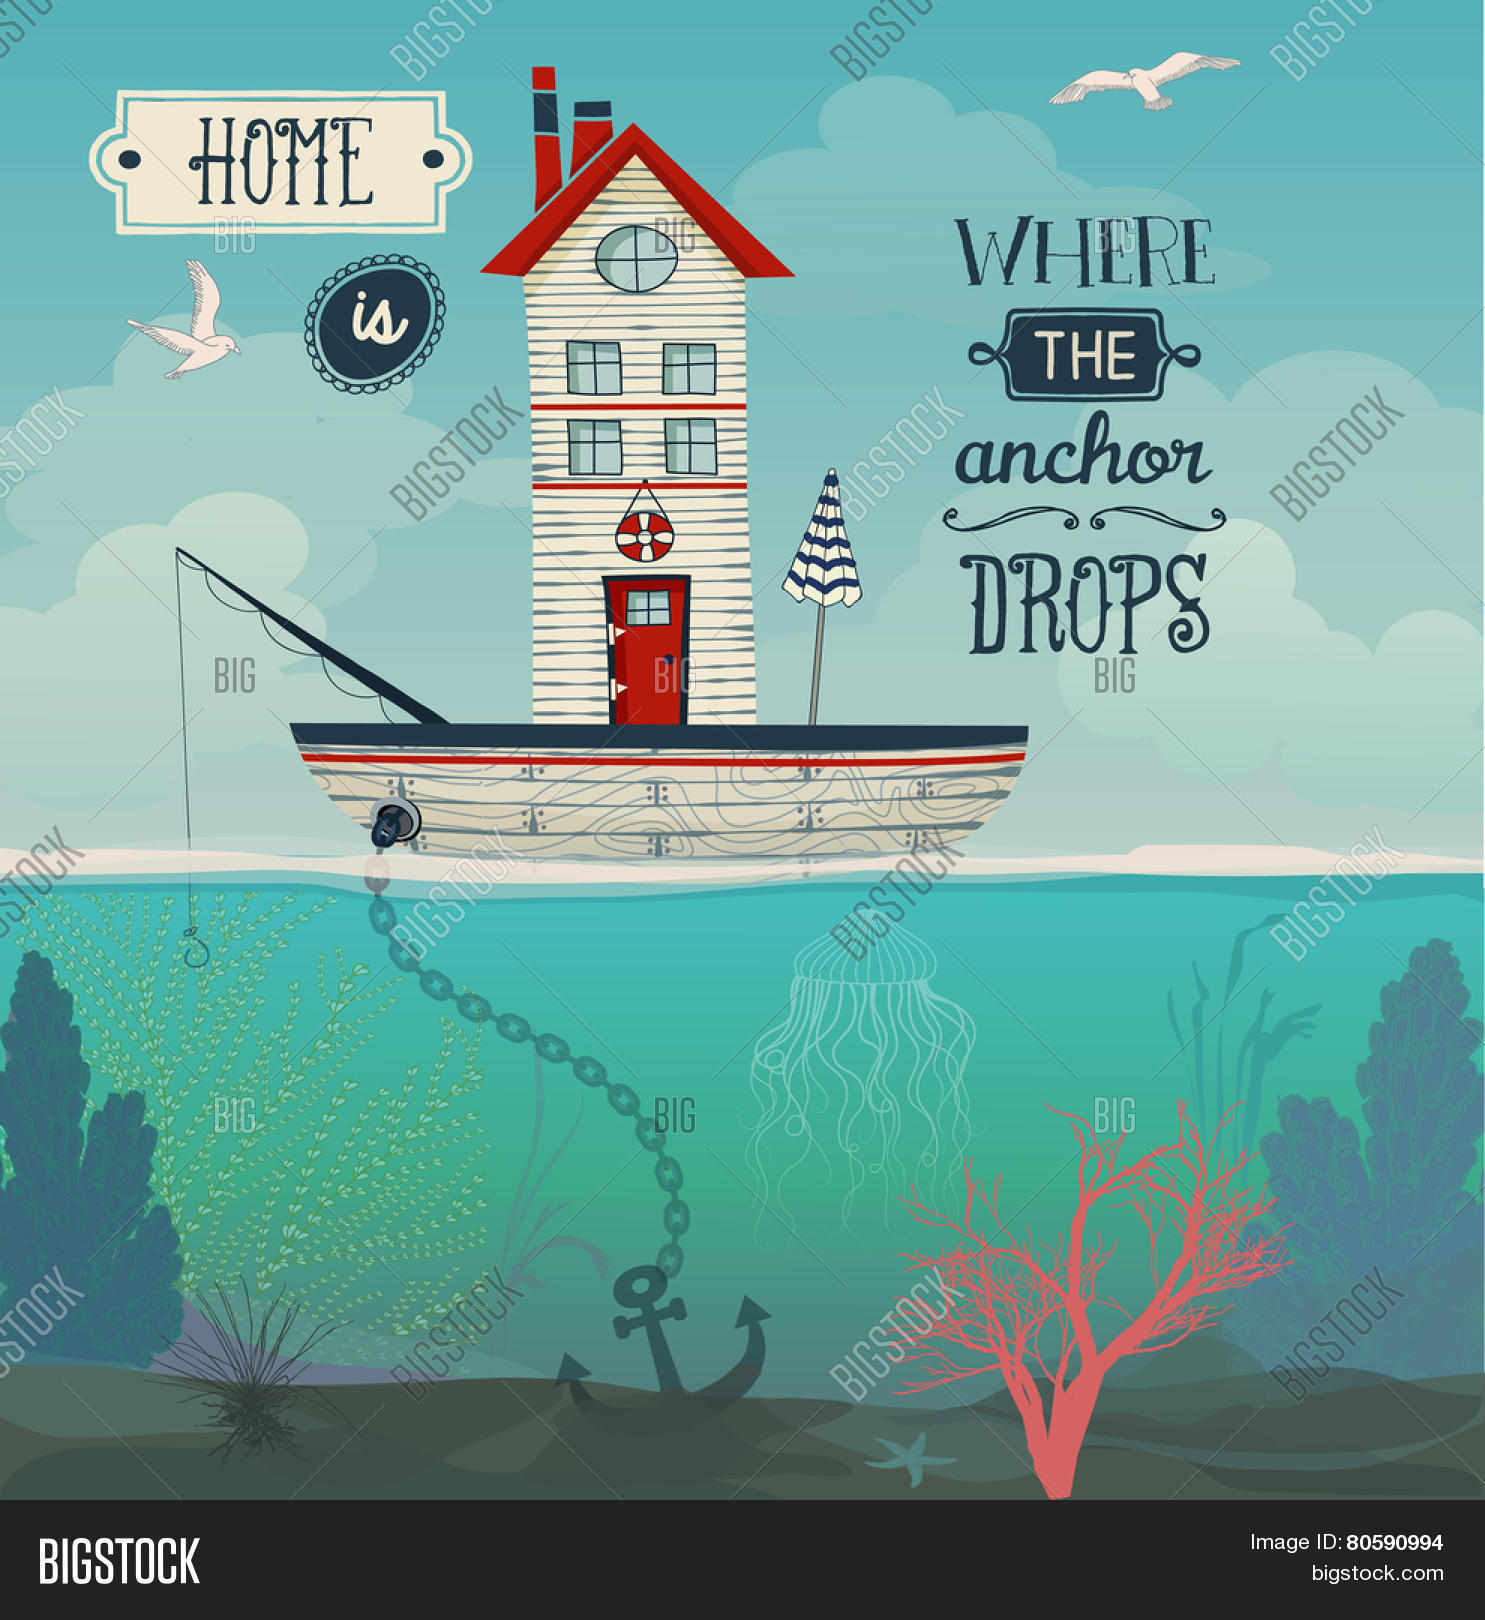 Boat Home - Home Vector & Photo (Free Trial) | Bigstock